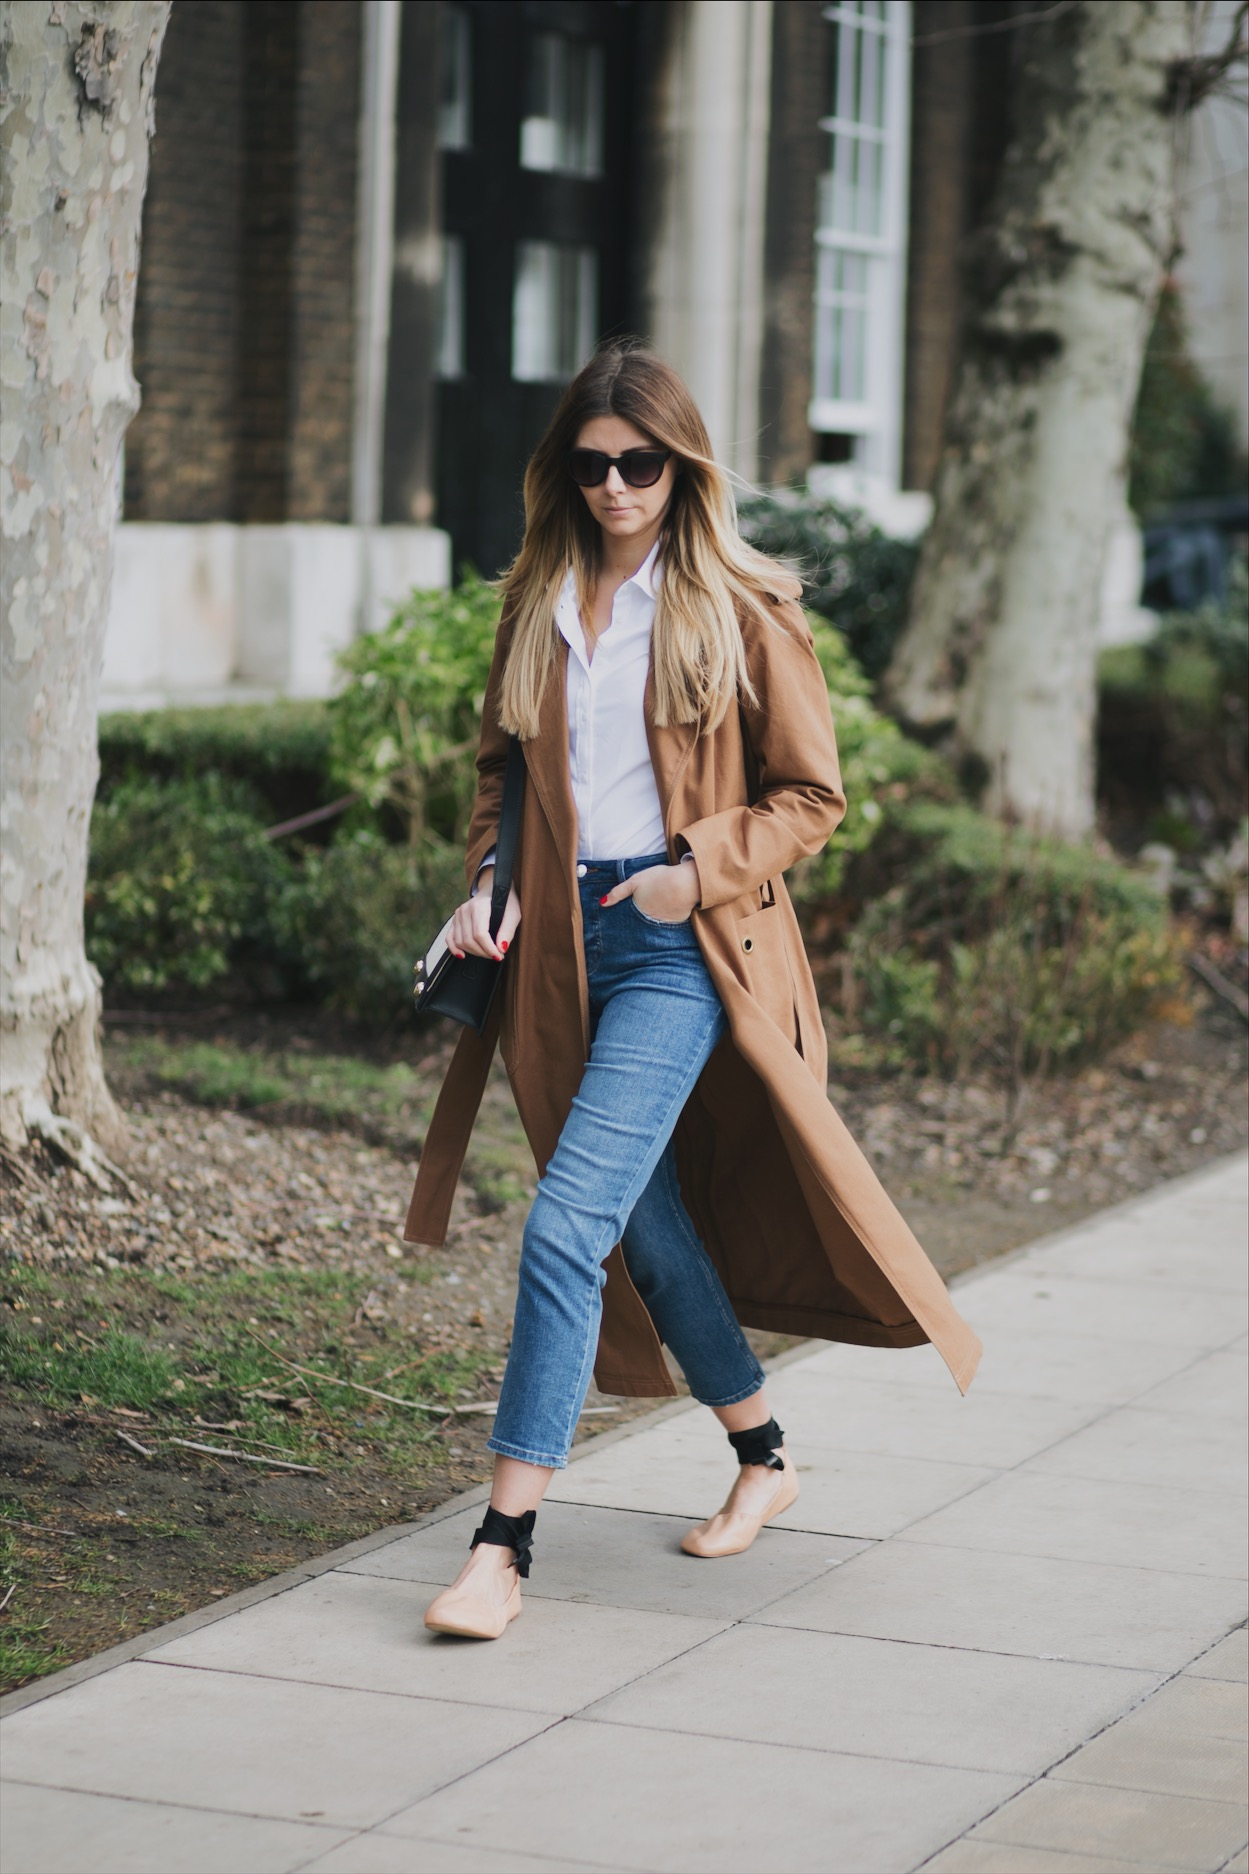 Camel trench coat, white shirt, straight leg cropped jeans, nude leather ballet pumps, chic spring outfit